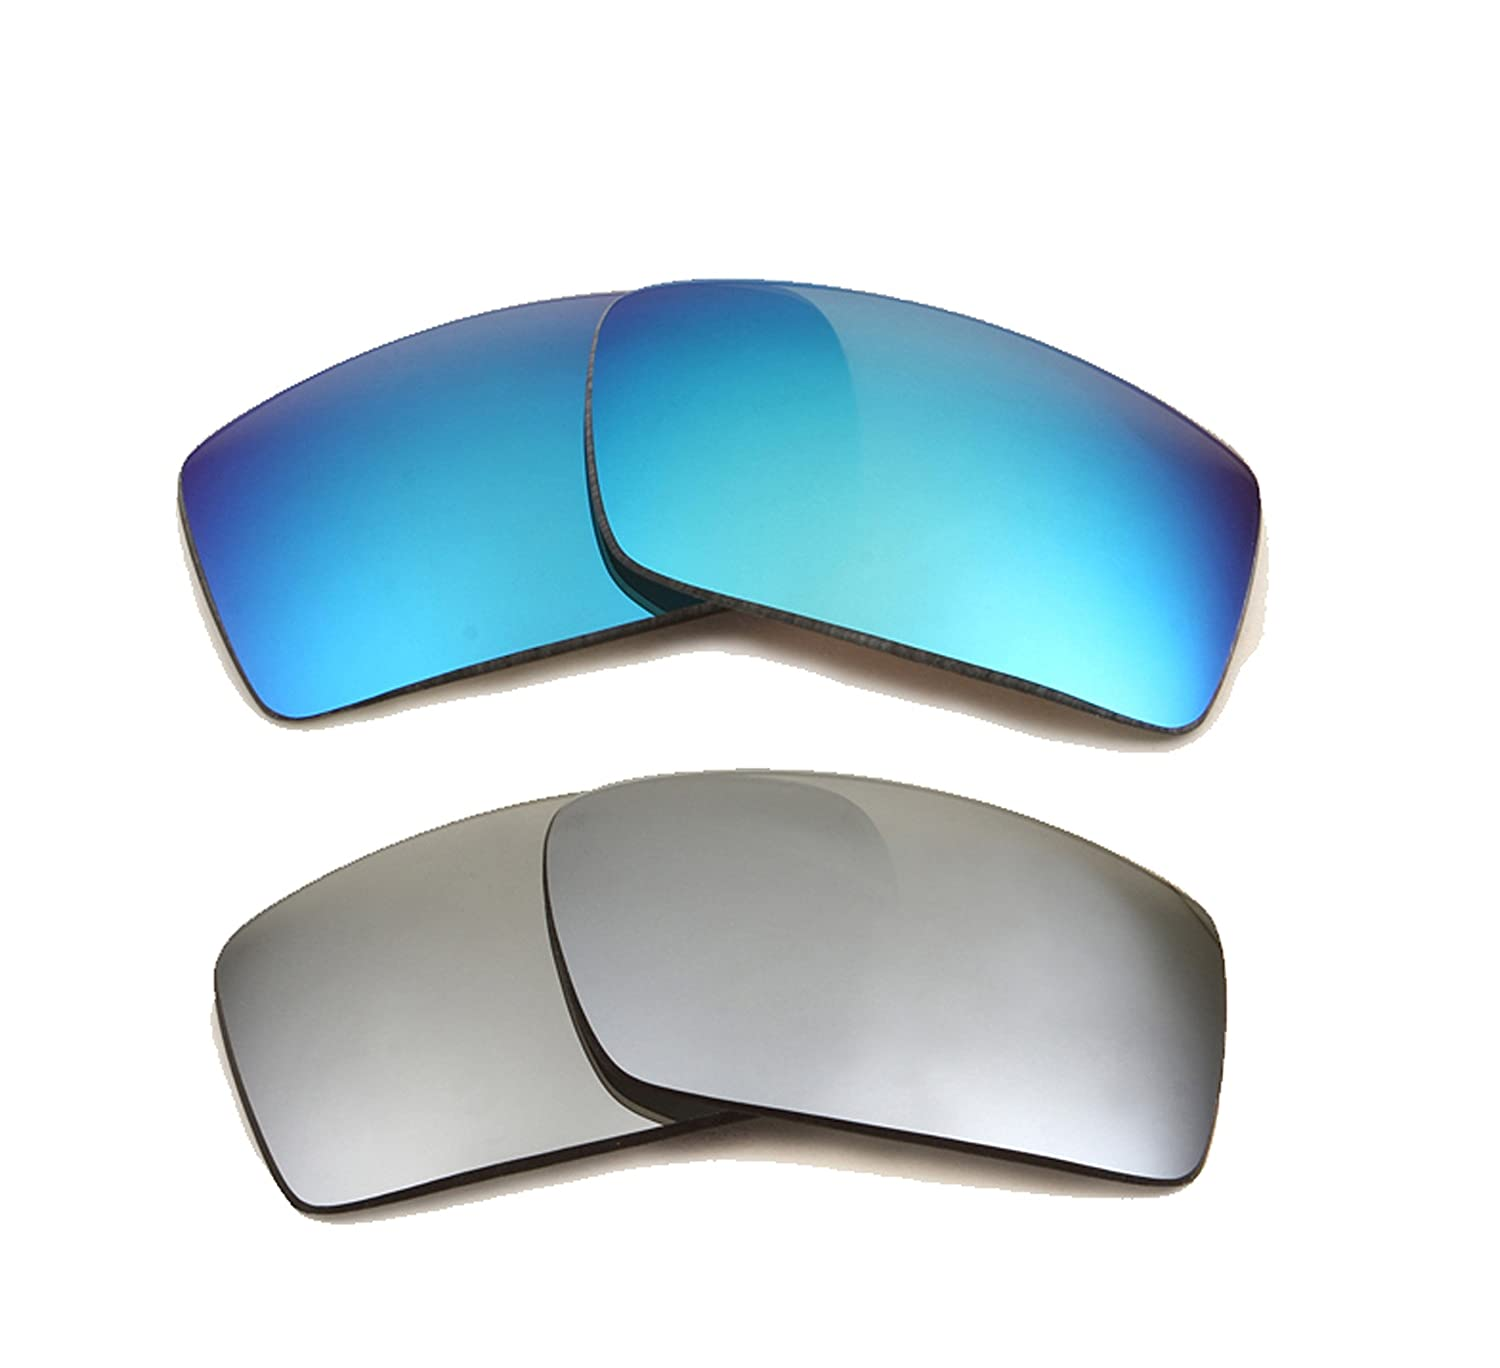 e0b3fbd168 HIJINX Replacement Lenses Polarized Blue   Silver by SEEK fits OAKLEY  Sunglasses at Amazon Men s Clothing store  Replacement Sunglass Lenses